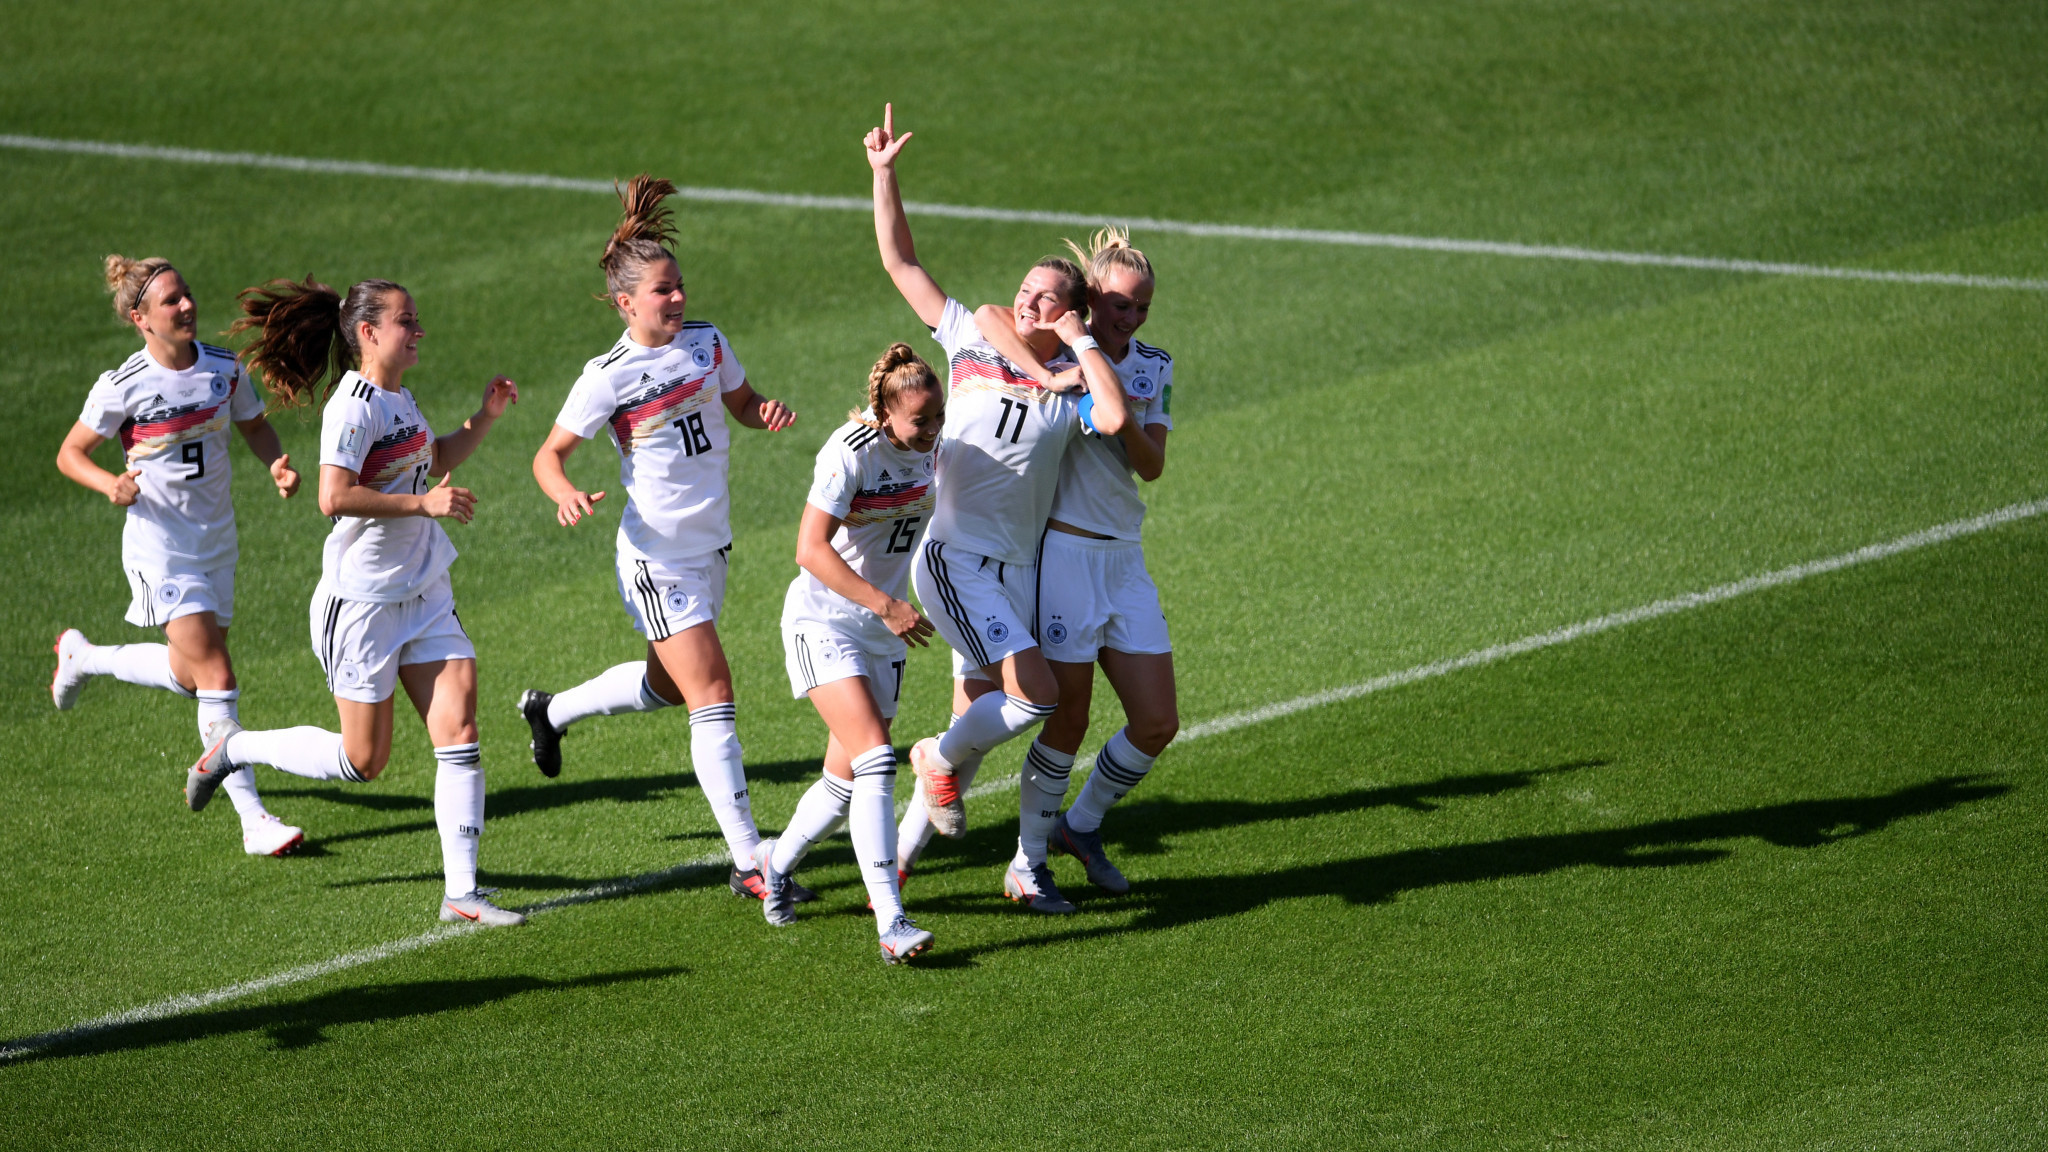 Popp is mobbed by her team mates after her header opened the scoring in Grenoble ©Getty Images